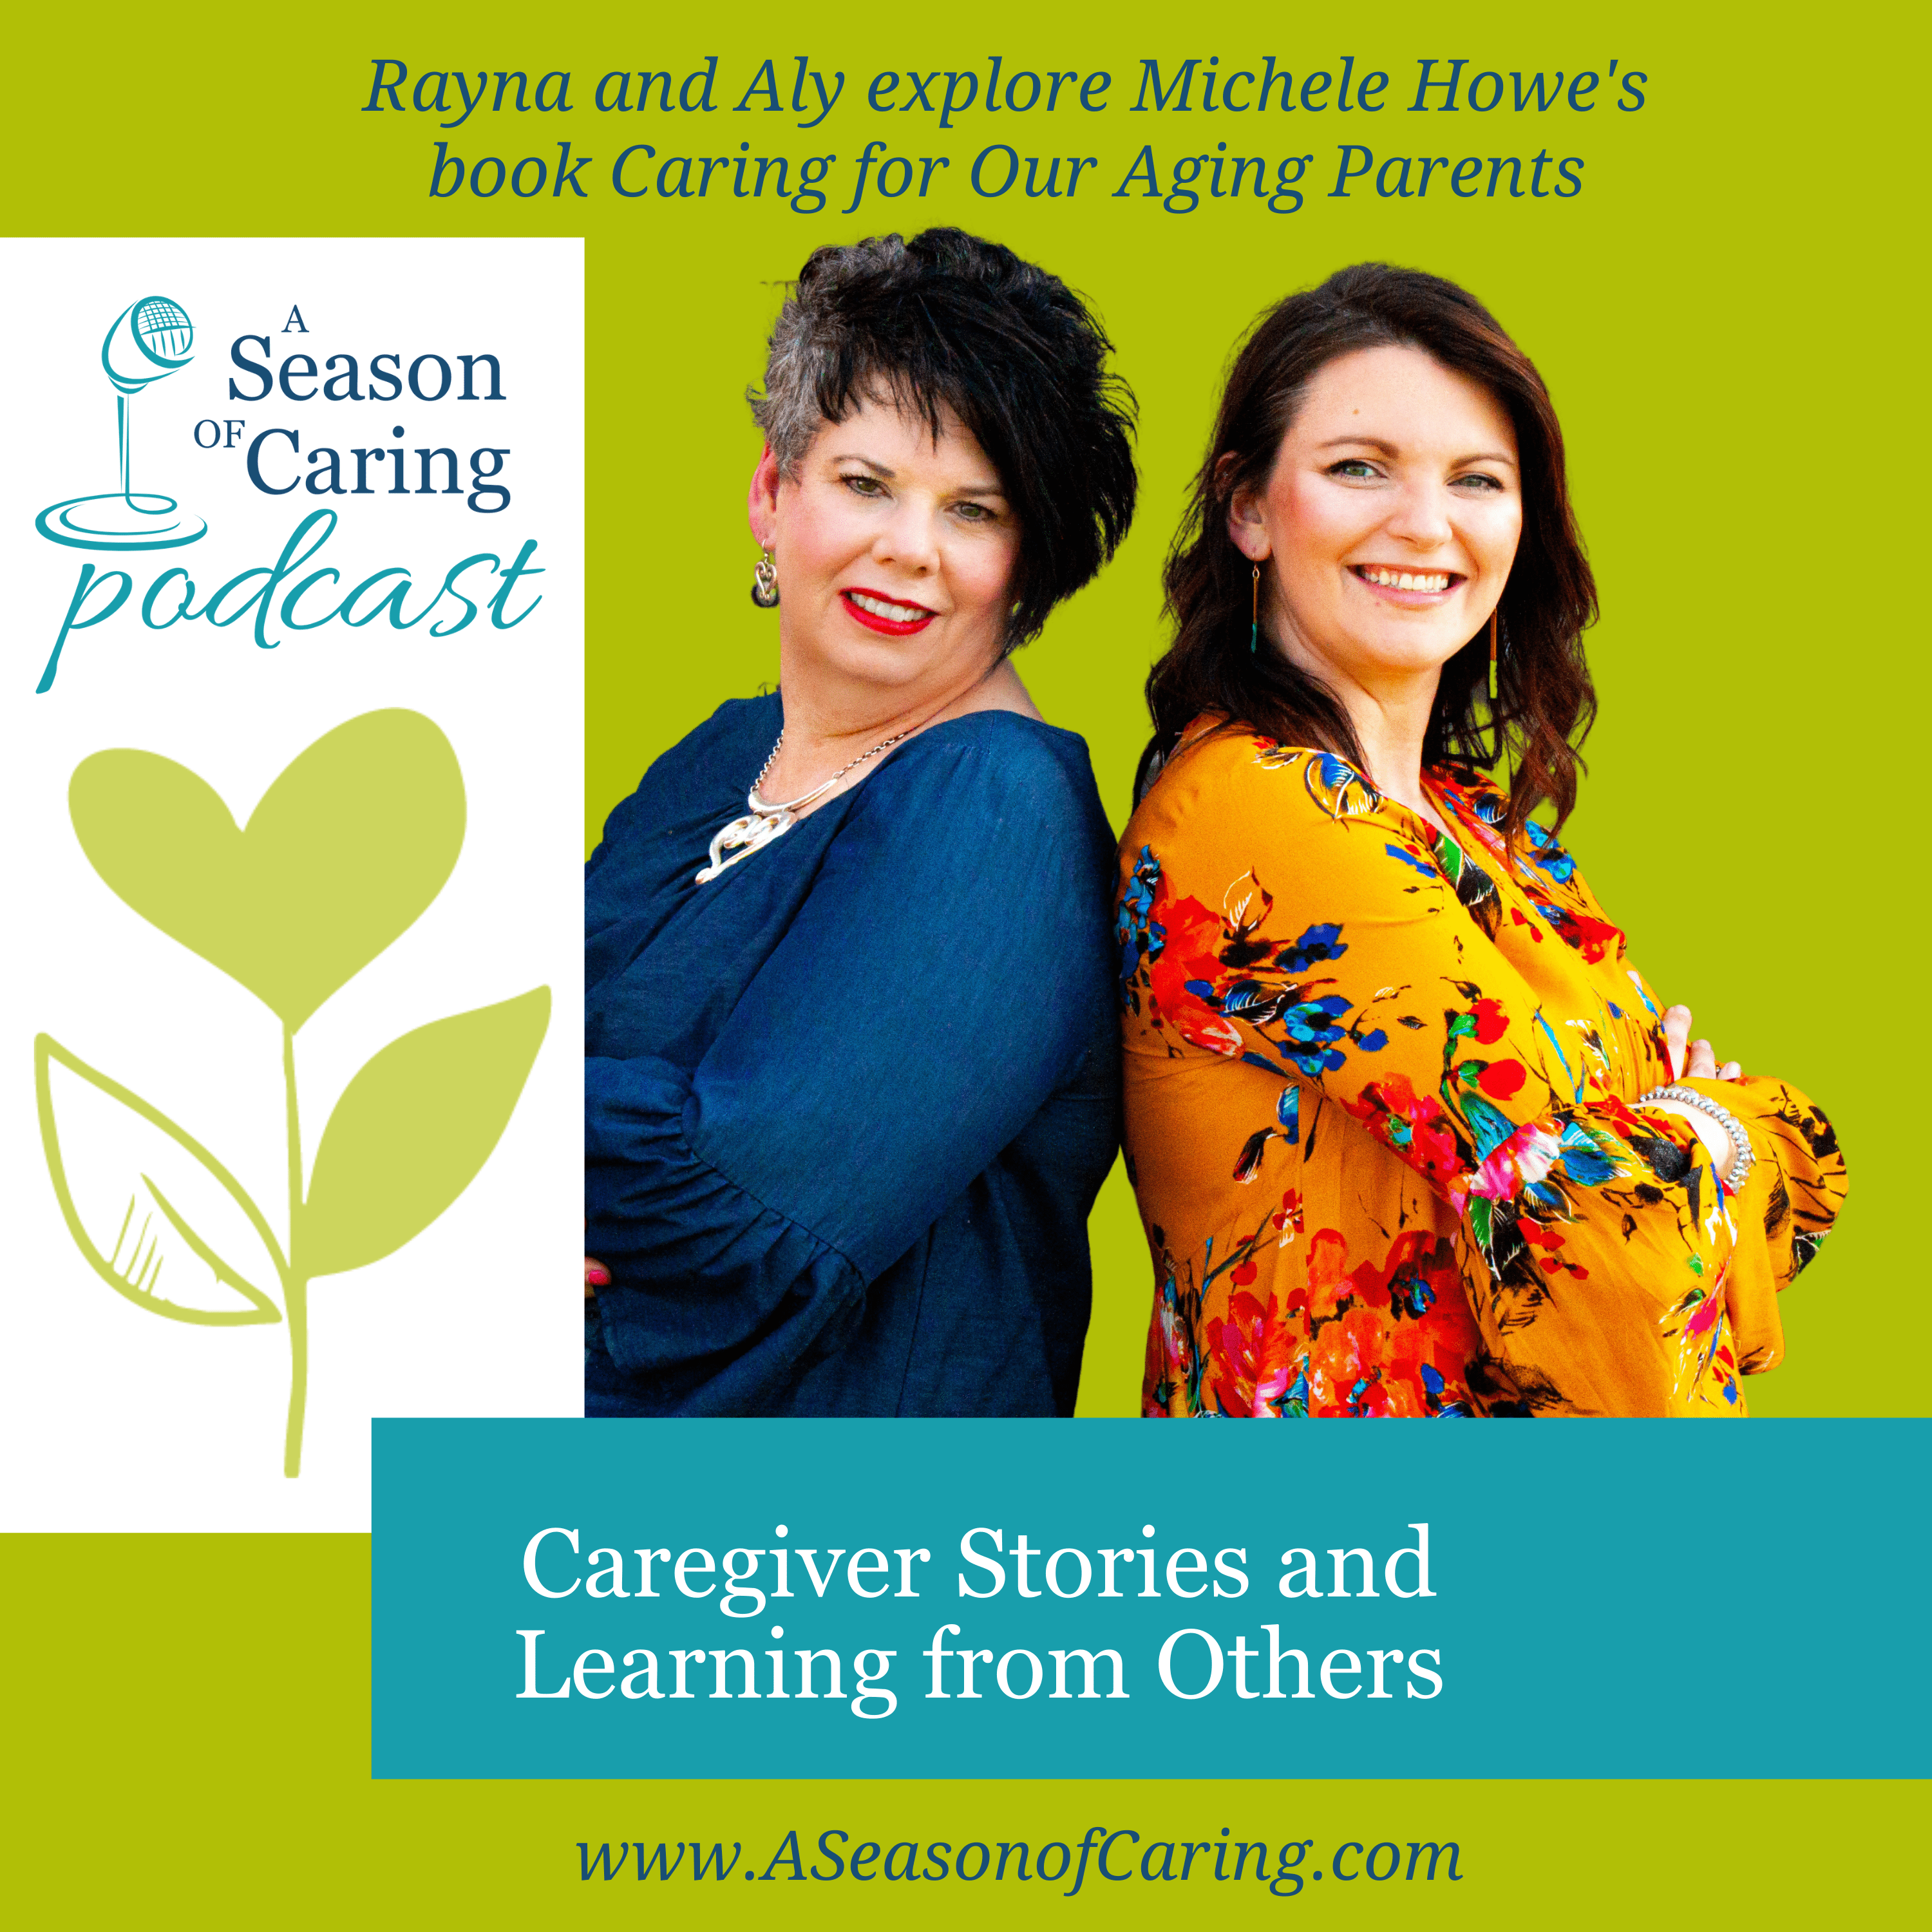 Caregiver Stories and Learning from Others